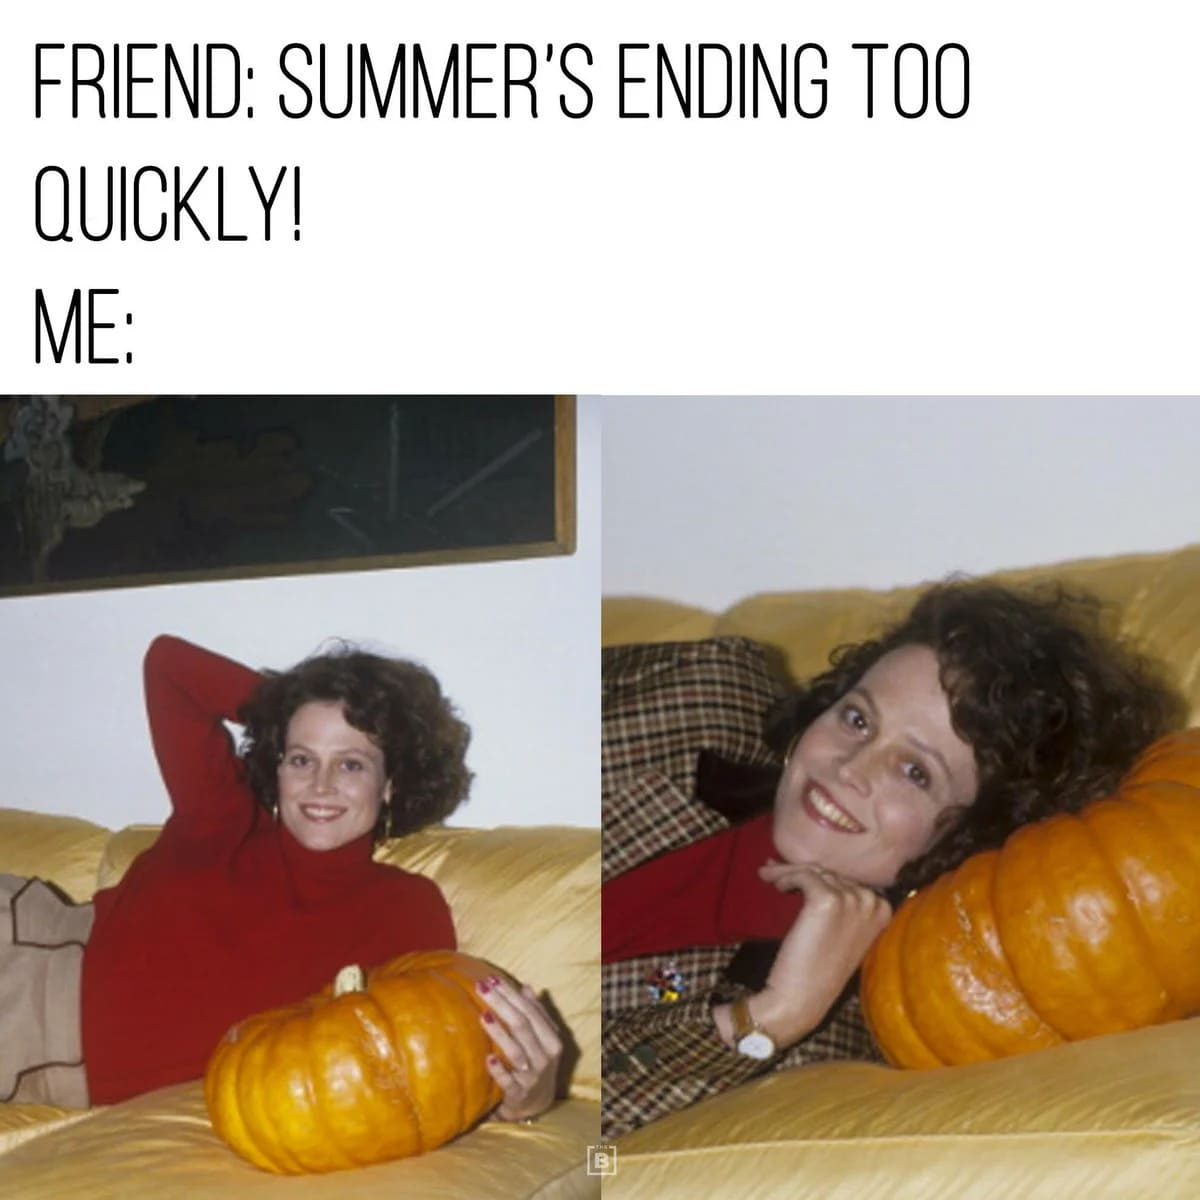 ending too quickly autumn fall meme, funny ending too quickly autumn fall meme, fall meme, fall memes, funny fall meme, funny fall memes, autumn meme, autumn memes, funny autumn meme, funny autumn memes, funny memes about fall, funny meme about fall, funny meme about autumn, funny memes about autumn, meme about fall, memes about fall, memes about autumn, meme about autumn, autumn joke, autumn jokes, joke about autumn, jokes about autumn, fall season meme, autumn season meme, fall season memes, autumn season memes